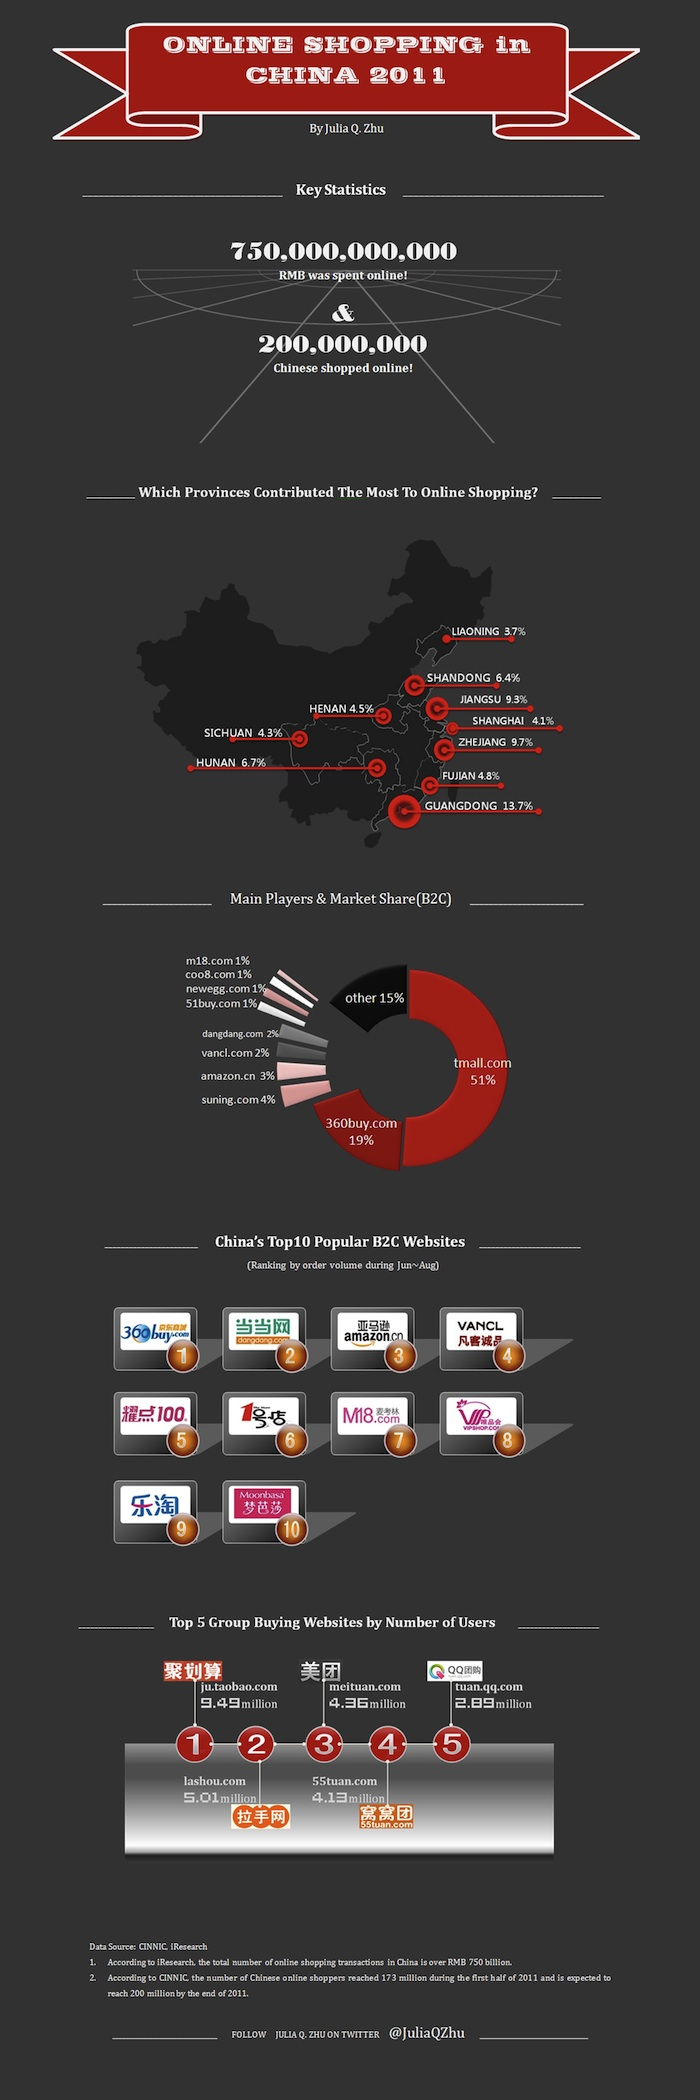 online shopping in china in 2011 infographic. Black Bedroom Furniture Sets. Home Design Ideas